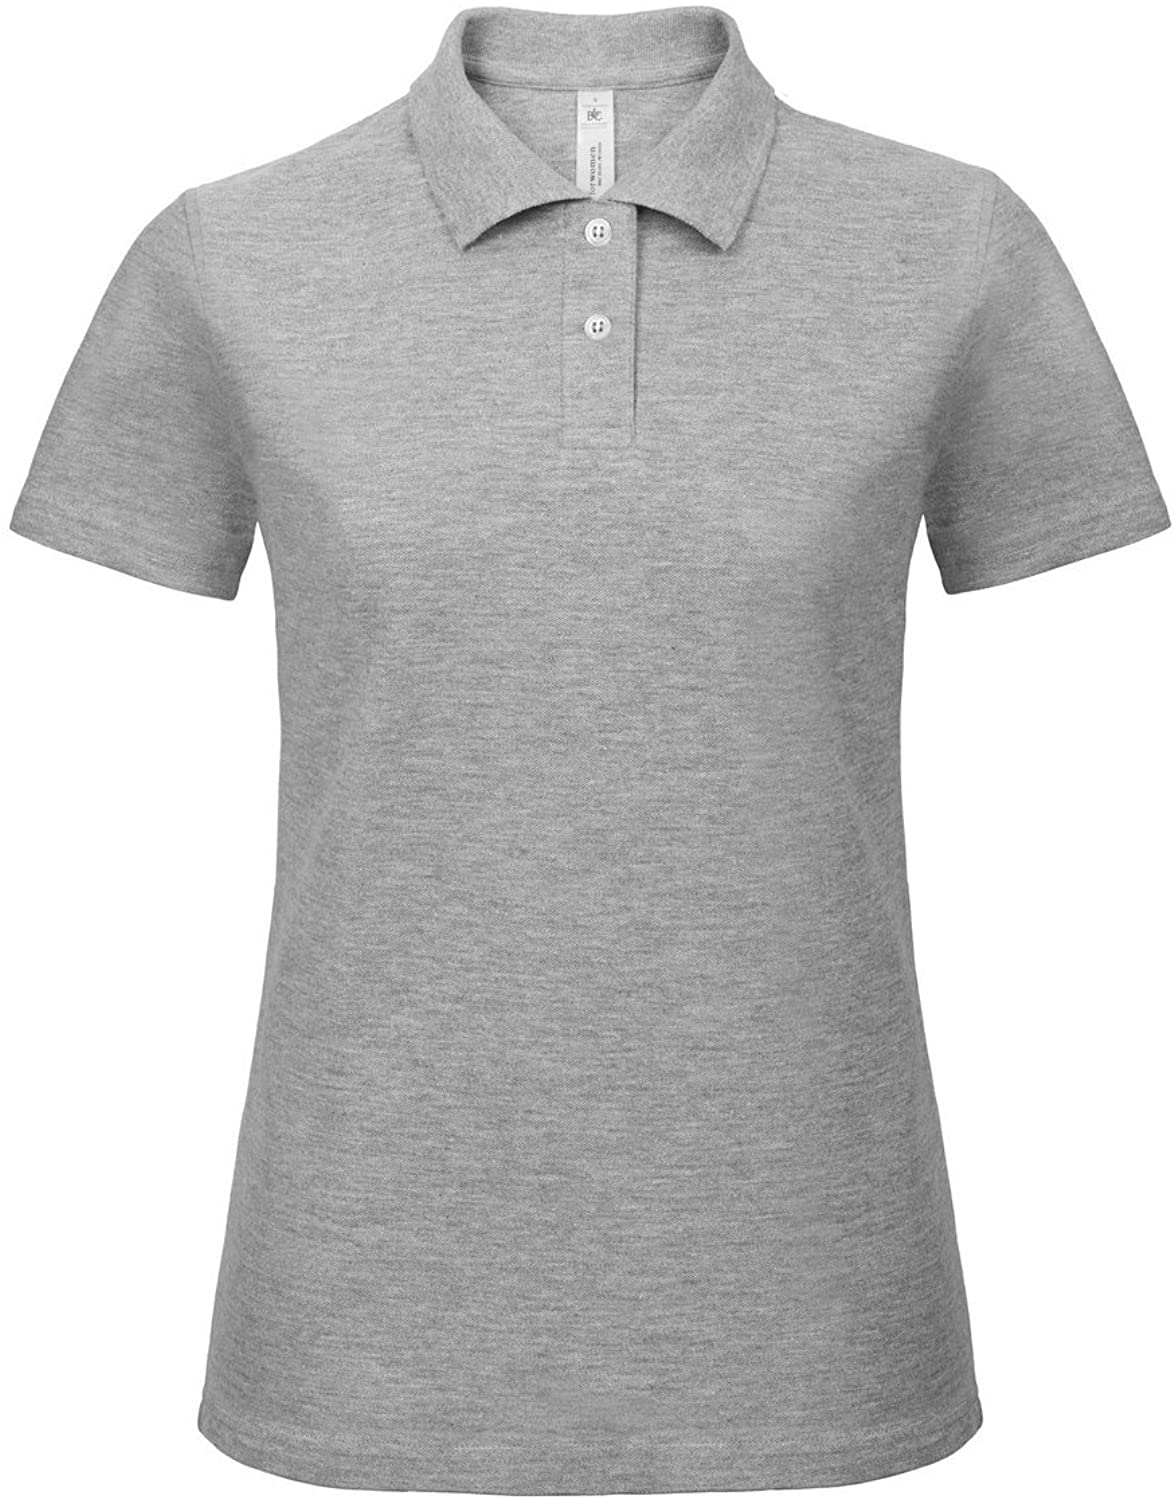 B&C Womens/Ladies ID.001 Plain Short Sleeve Polo Shirt (M) (Heather Grey)